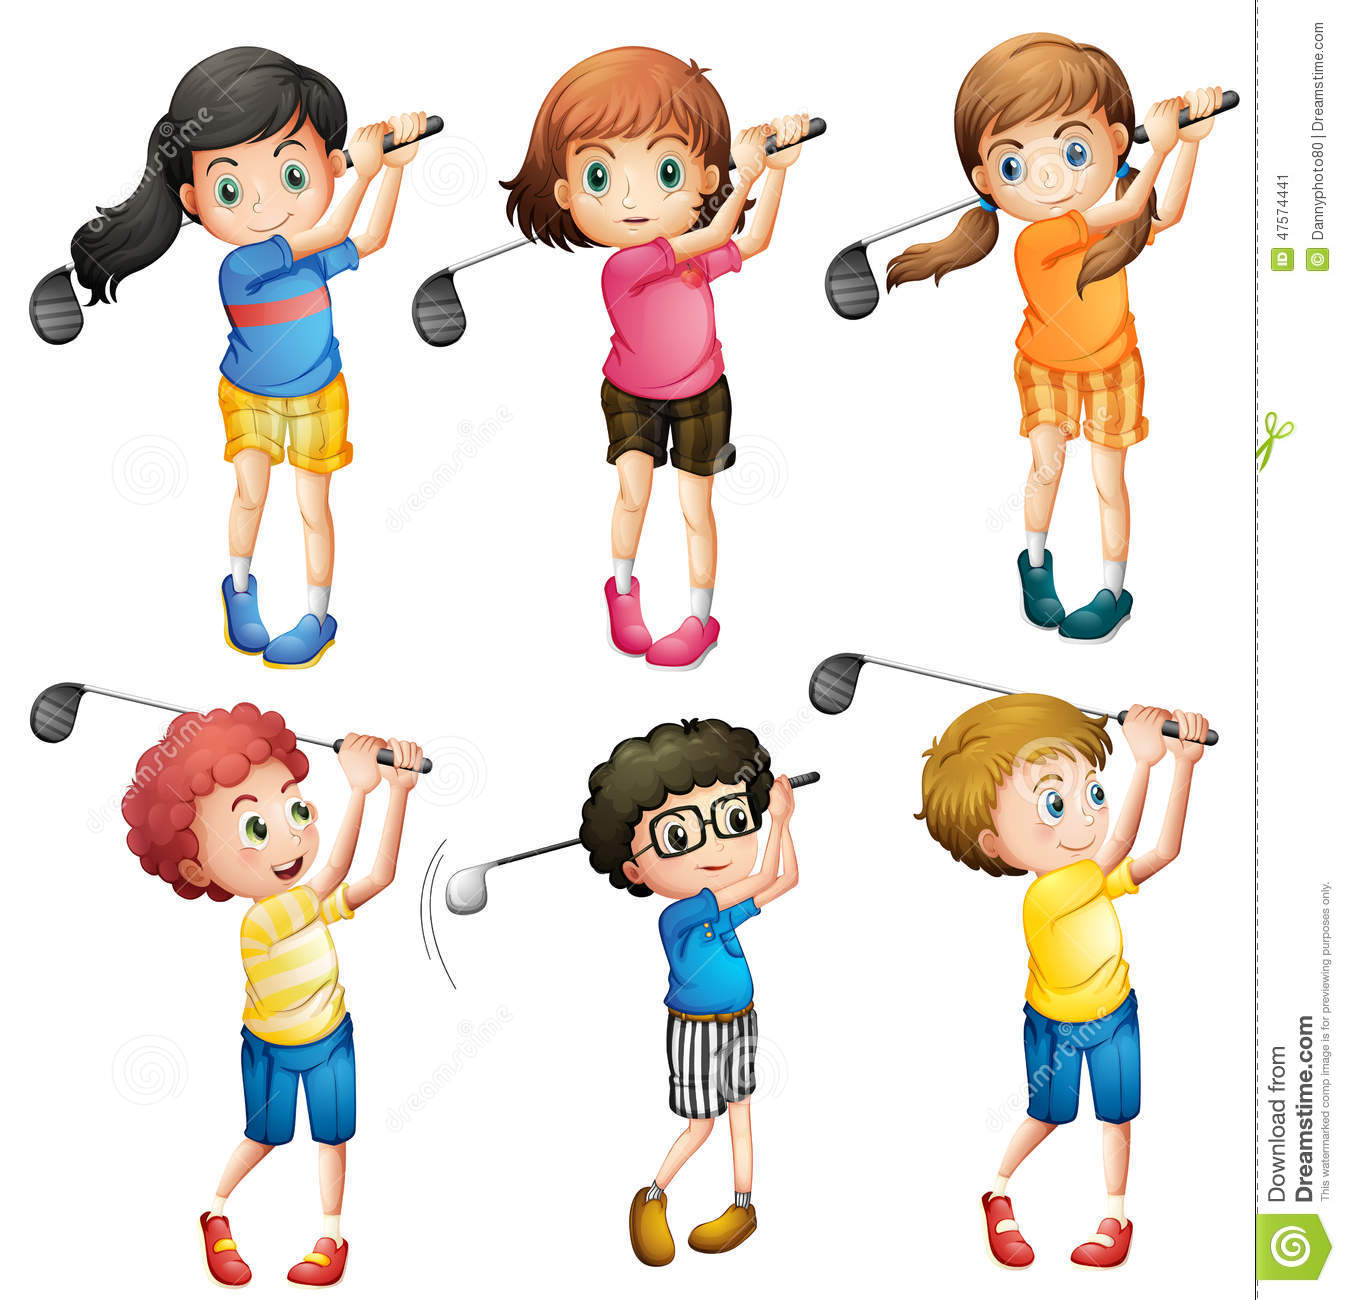 Kids Playing Golf Stock Vector - Image: 47574441 Kid Golfer Clipart